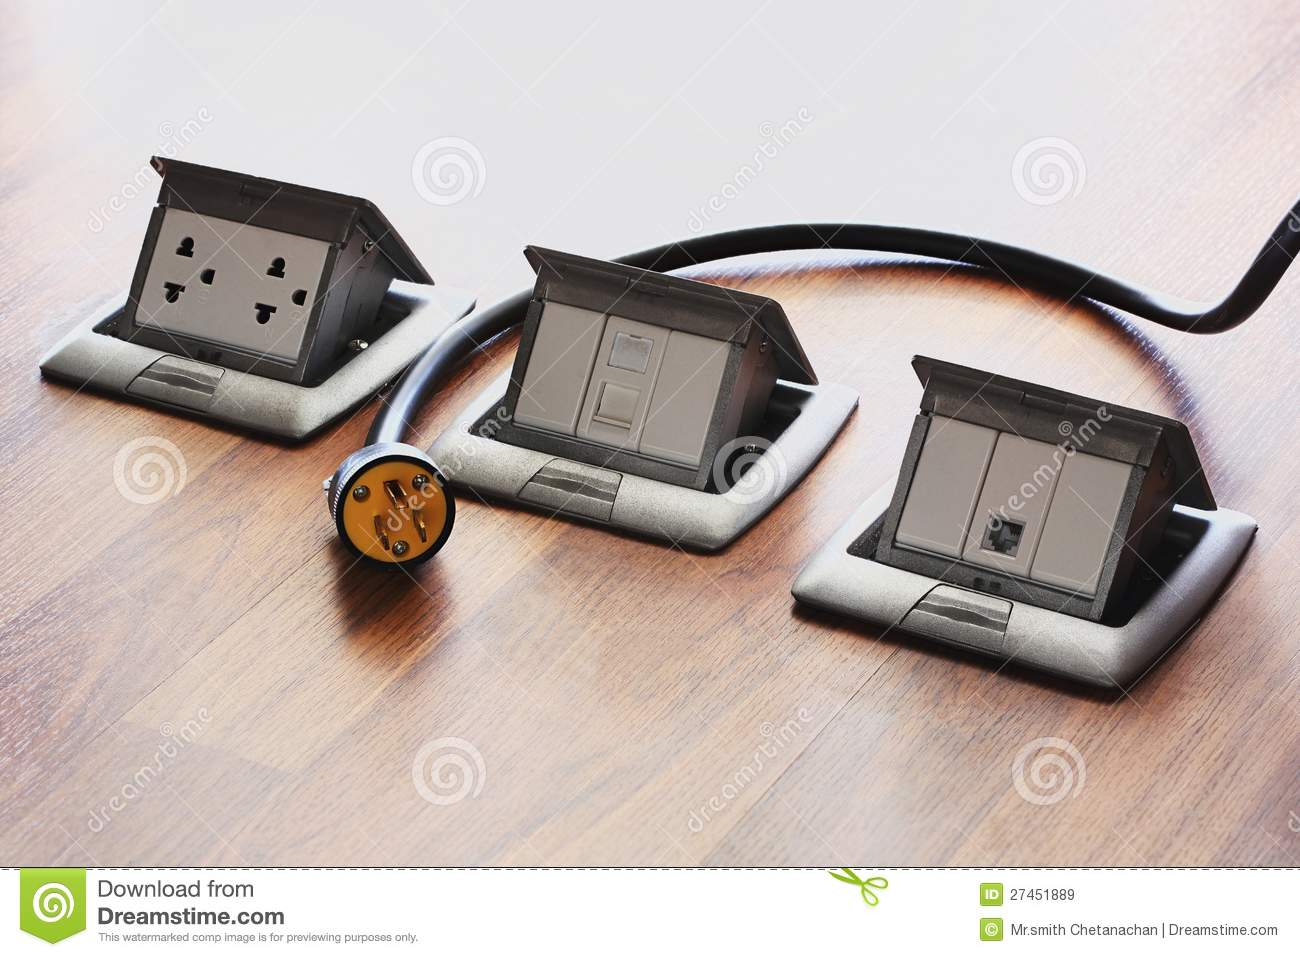 pop up floor socket stock image image of metal wire 27451889 rh dreamstime com Wiring a Outlet Plug Wiring a Outlet Plug